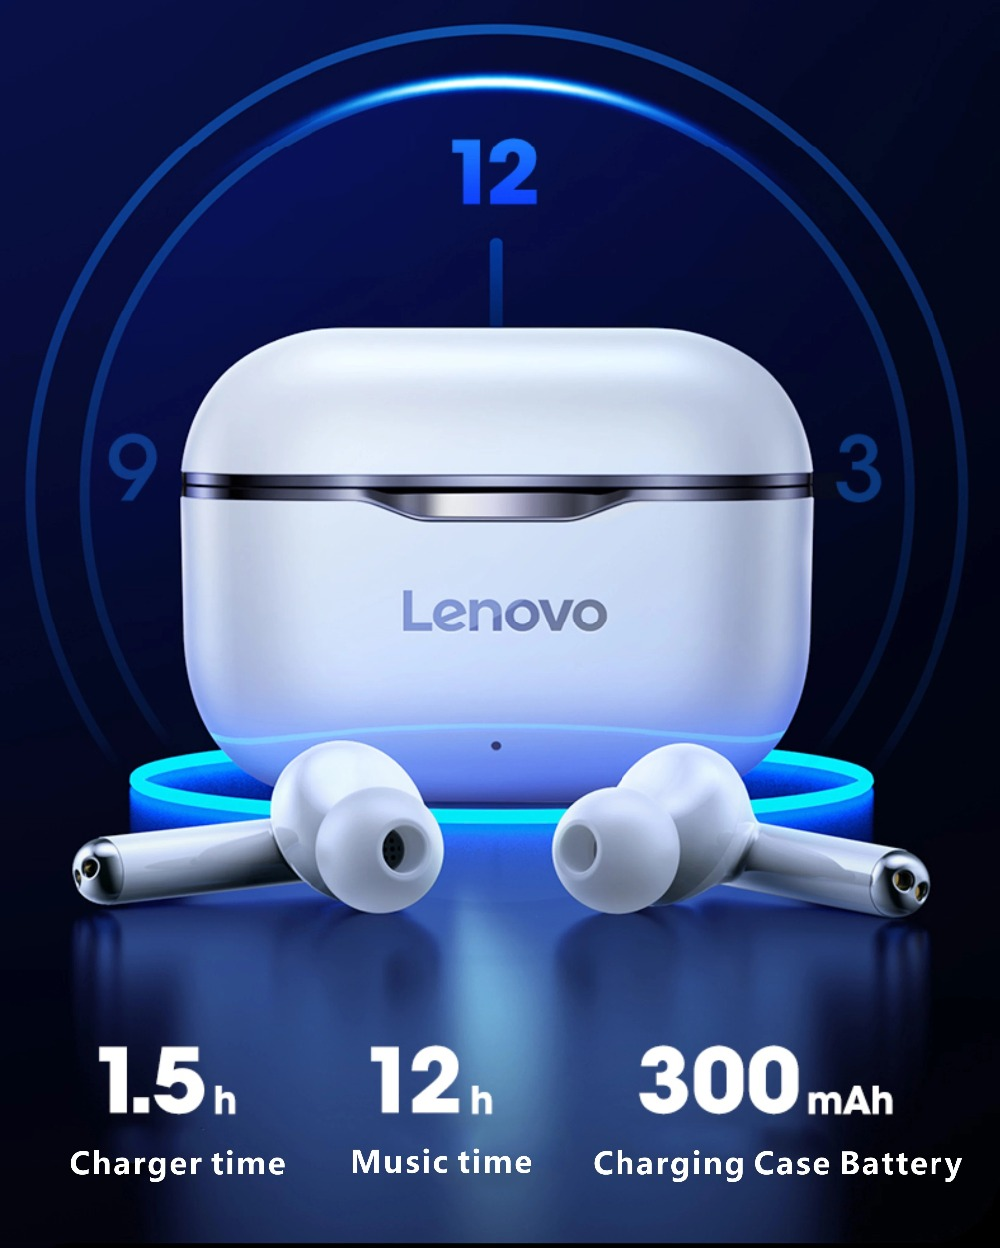 NEW Original Lenovo LP1 TWS Wireless Earphone Bluetooth 5.0 Dual Stereo Noise Reduction Bass Touch Control Long Standby 300mAH (9)